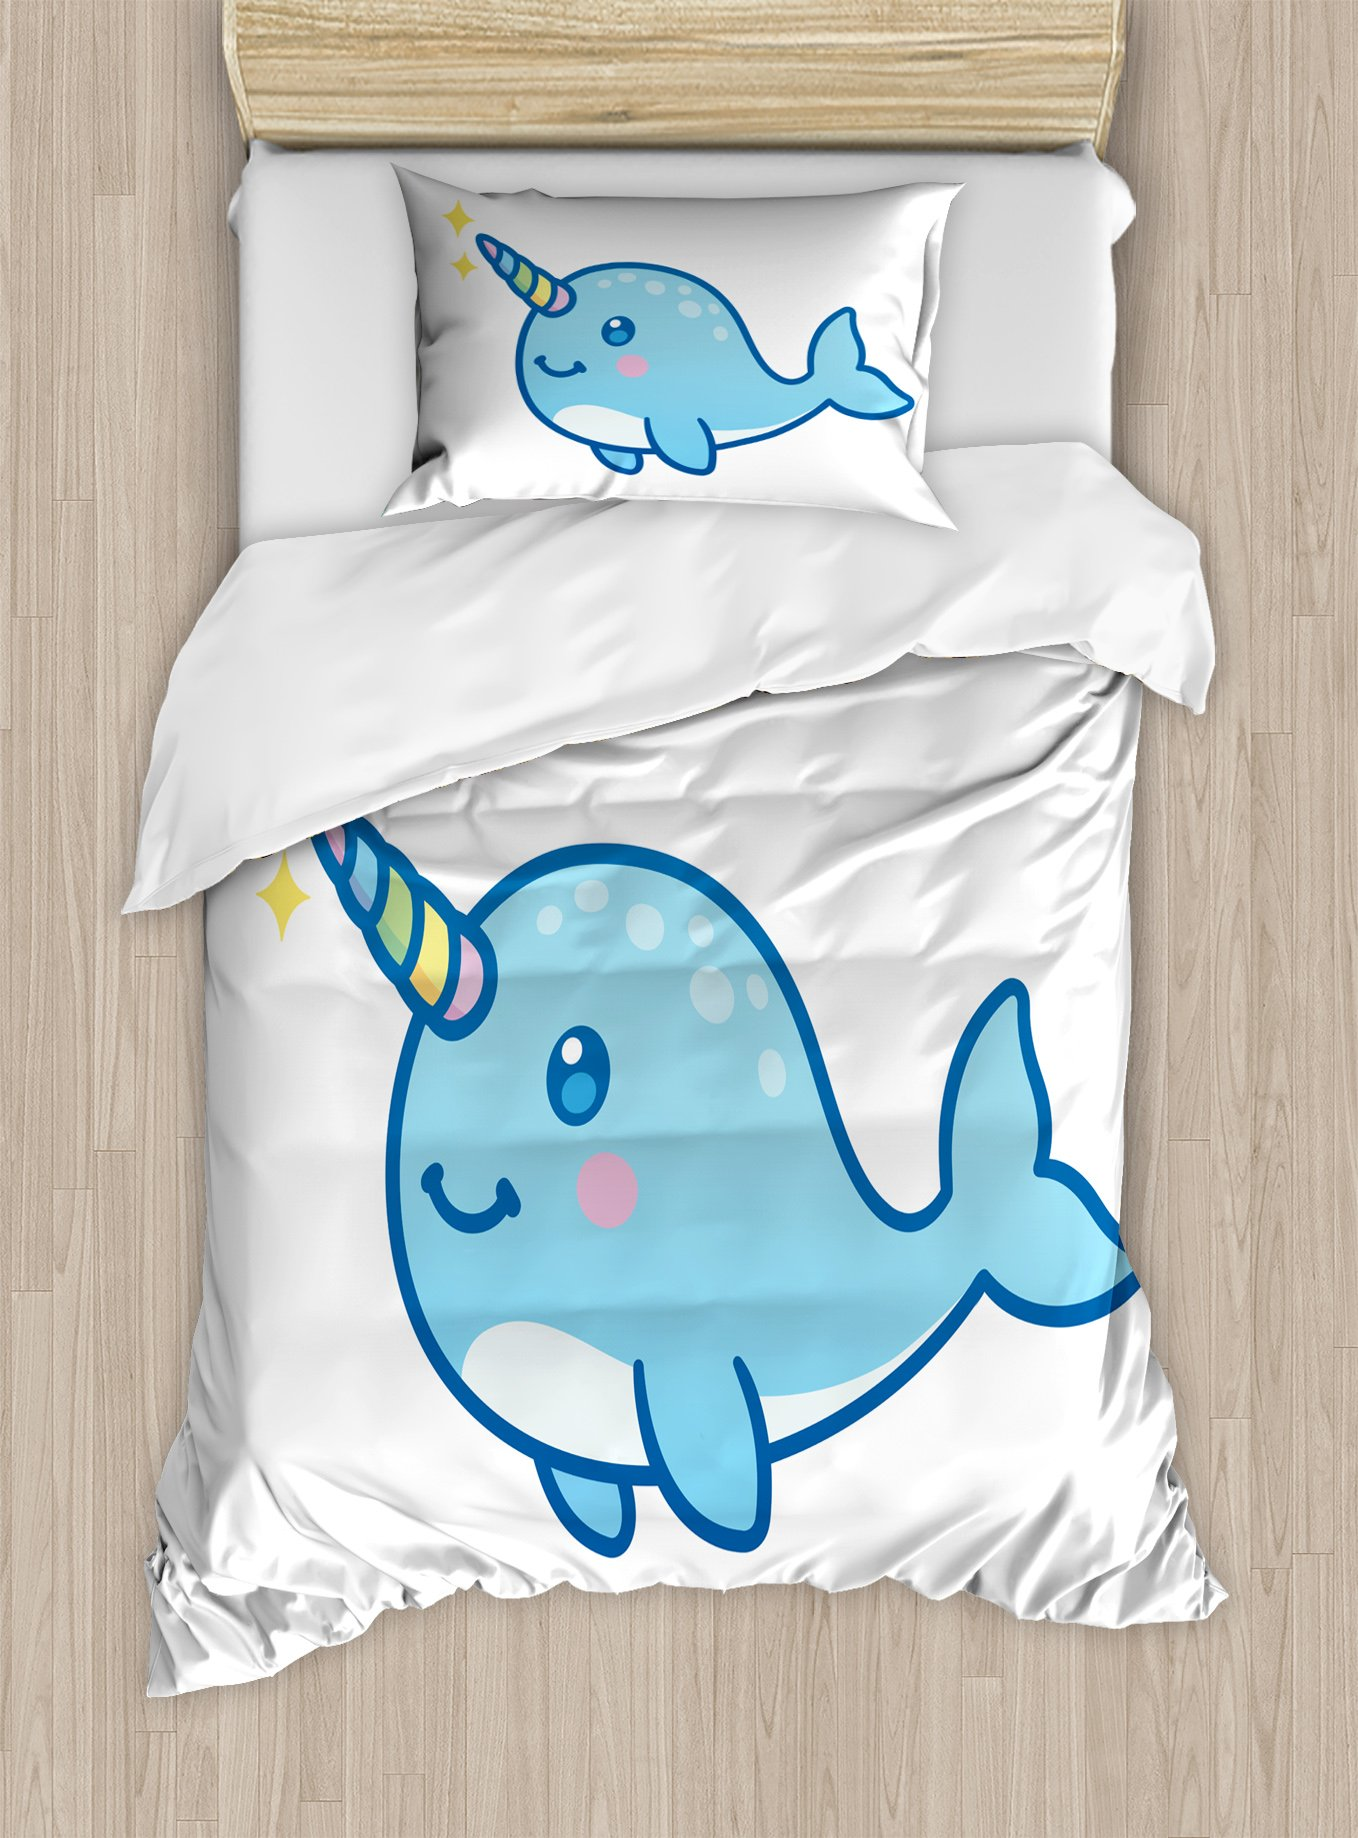 Ambesonne Narwhal Duvet Cover Set Twin Size, Cartoon Drawing Style Whale with Rainbow Horn Unicorn of The Ocean Arctic Animal, Decorative 2 Piece Bedding Set with 1 Pillow Sham, Multicolor